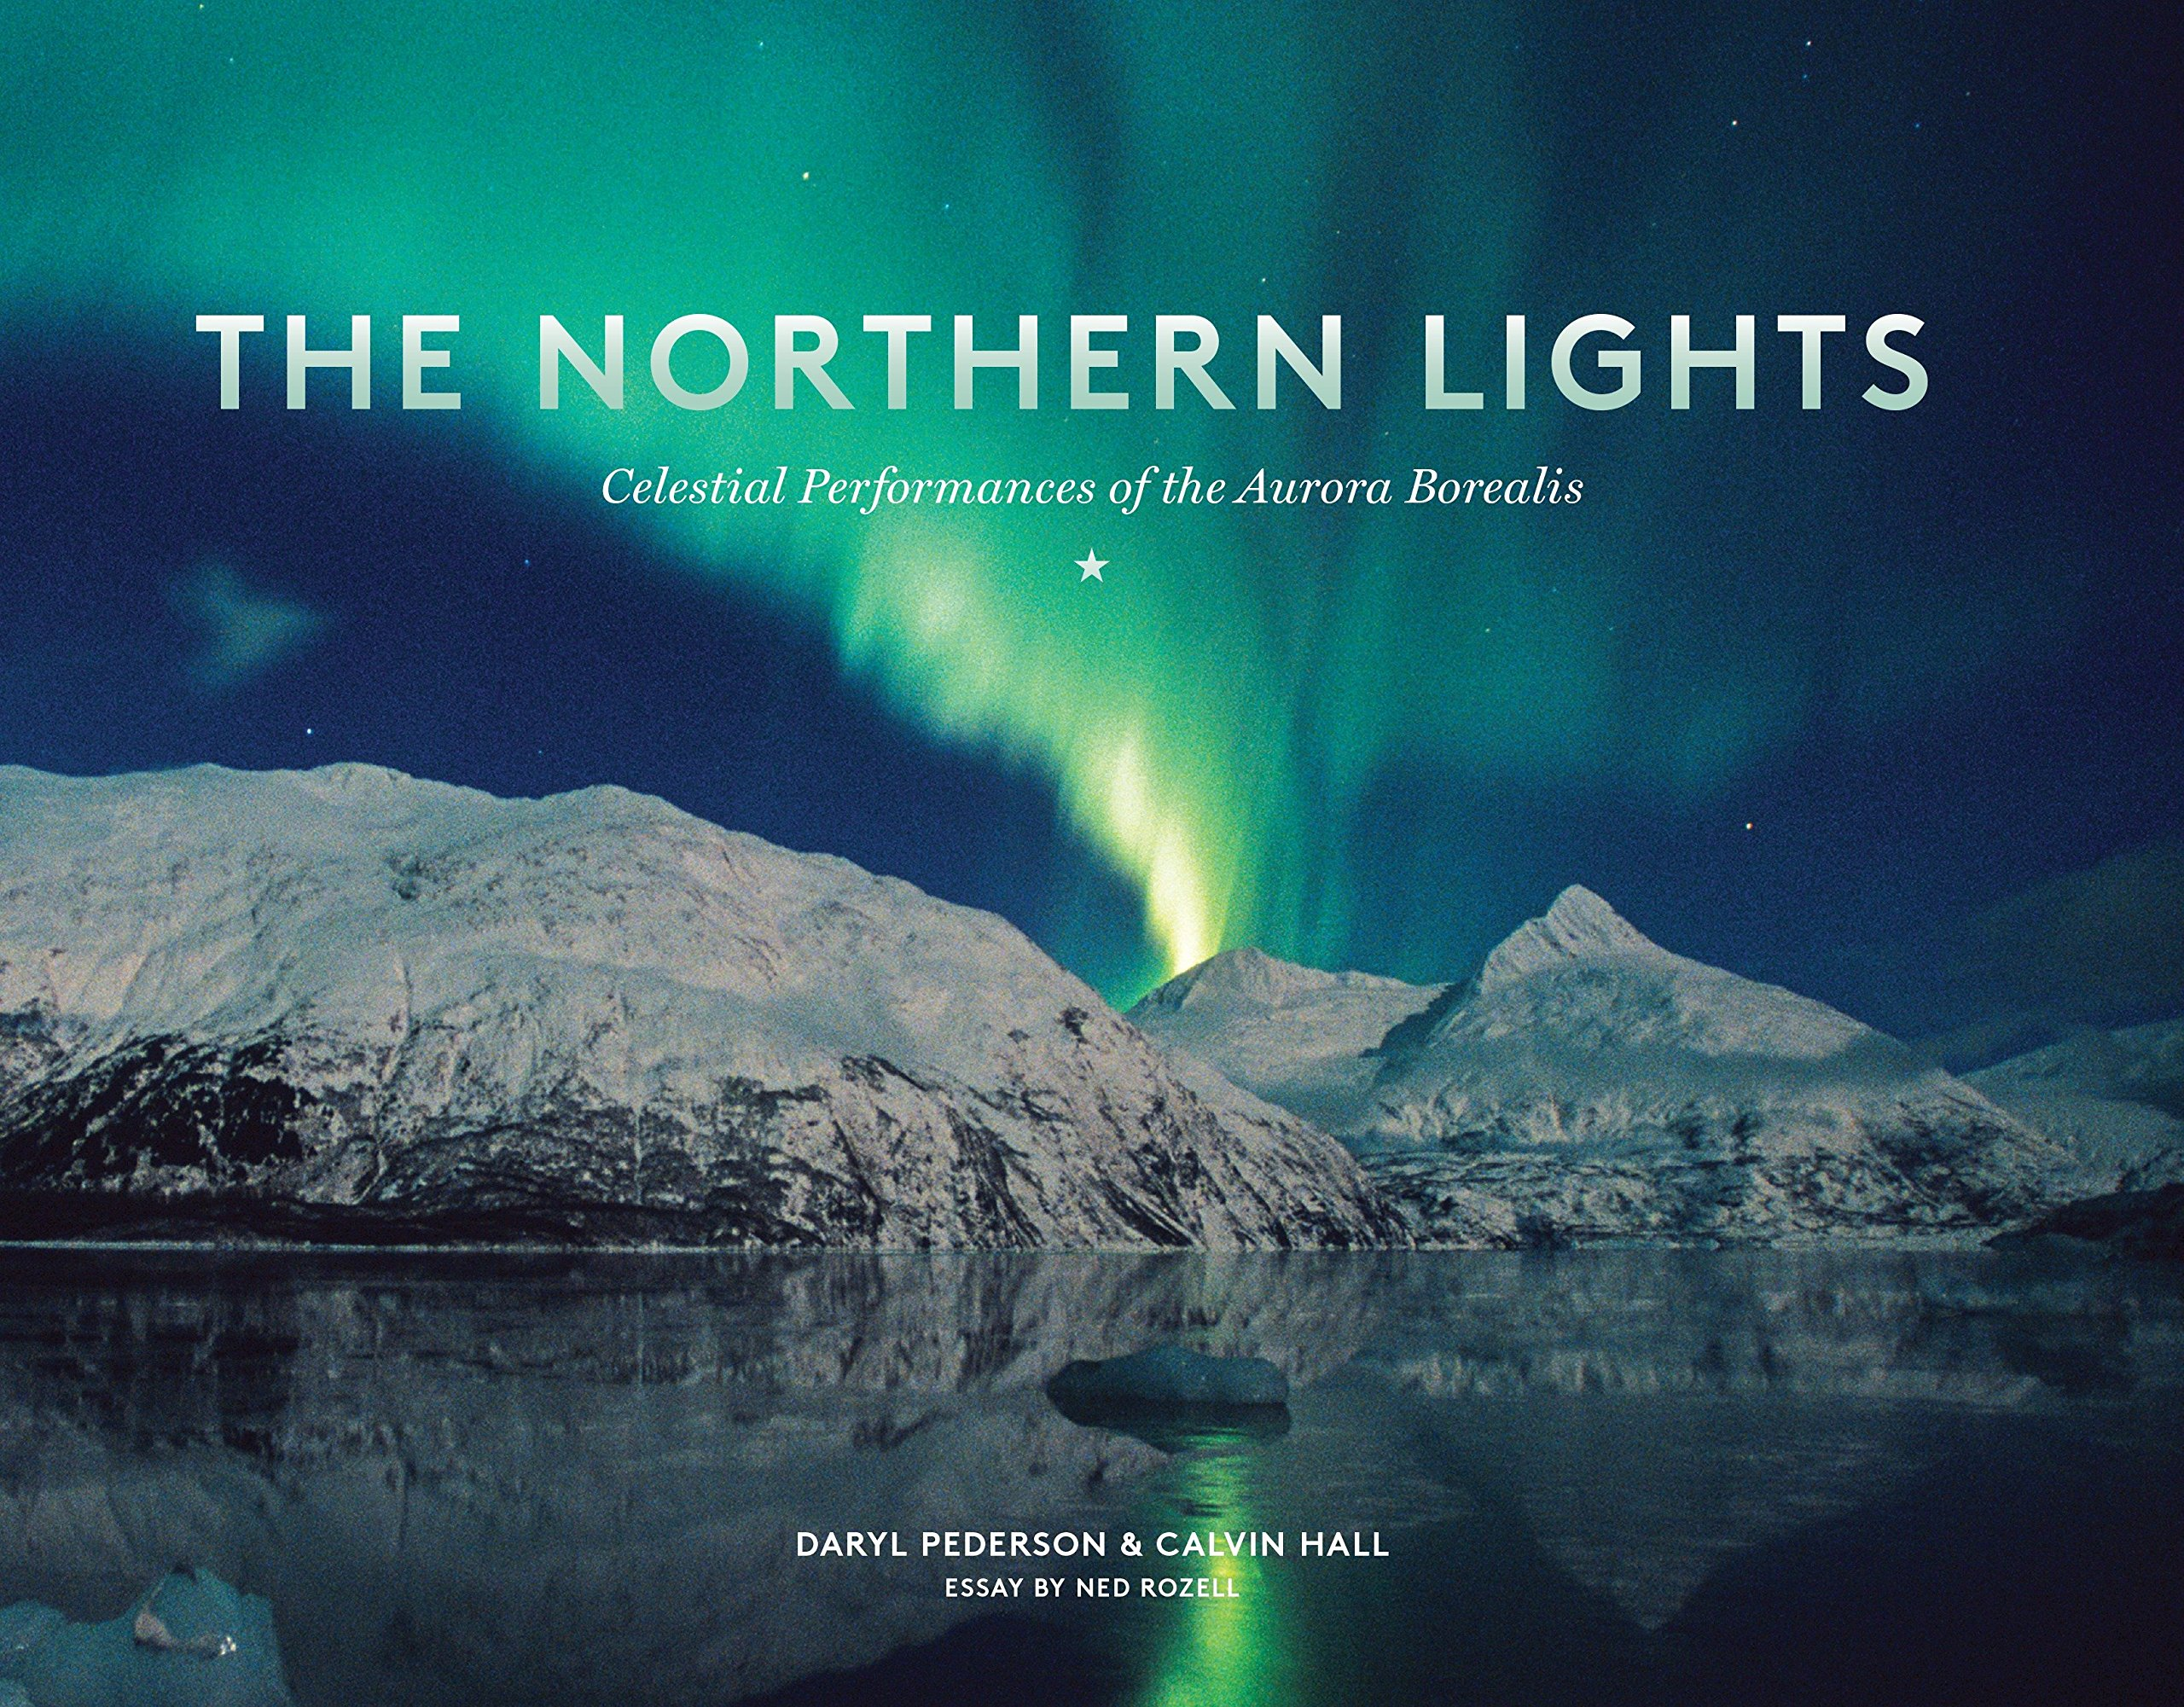 The Northern Lights: Celestial Performances Of The Aurora Borealis: Daryl  Pederson, Calvin Hall, Ned Rozell: 9781632170019: Amazon.com: Books